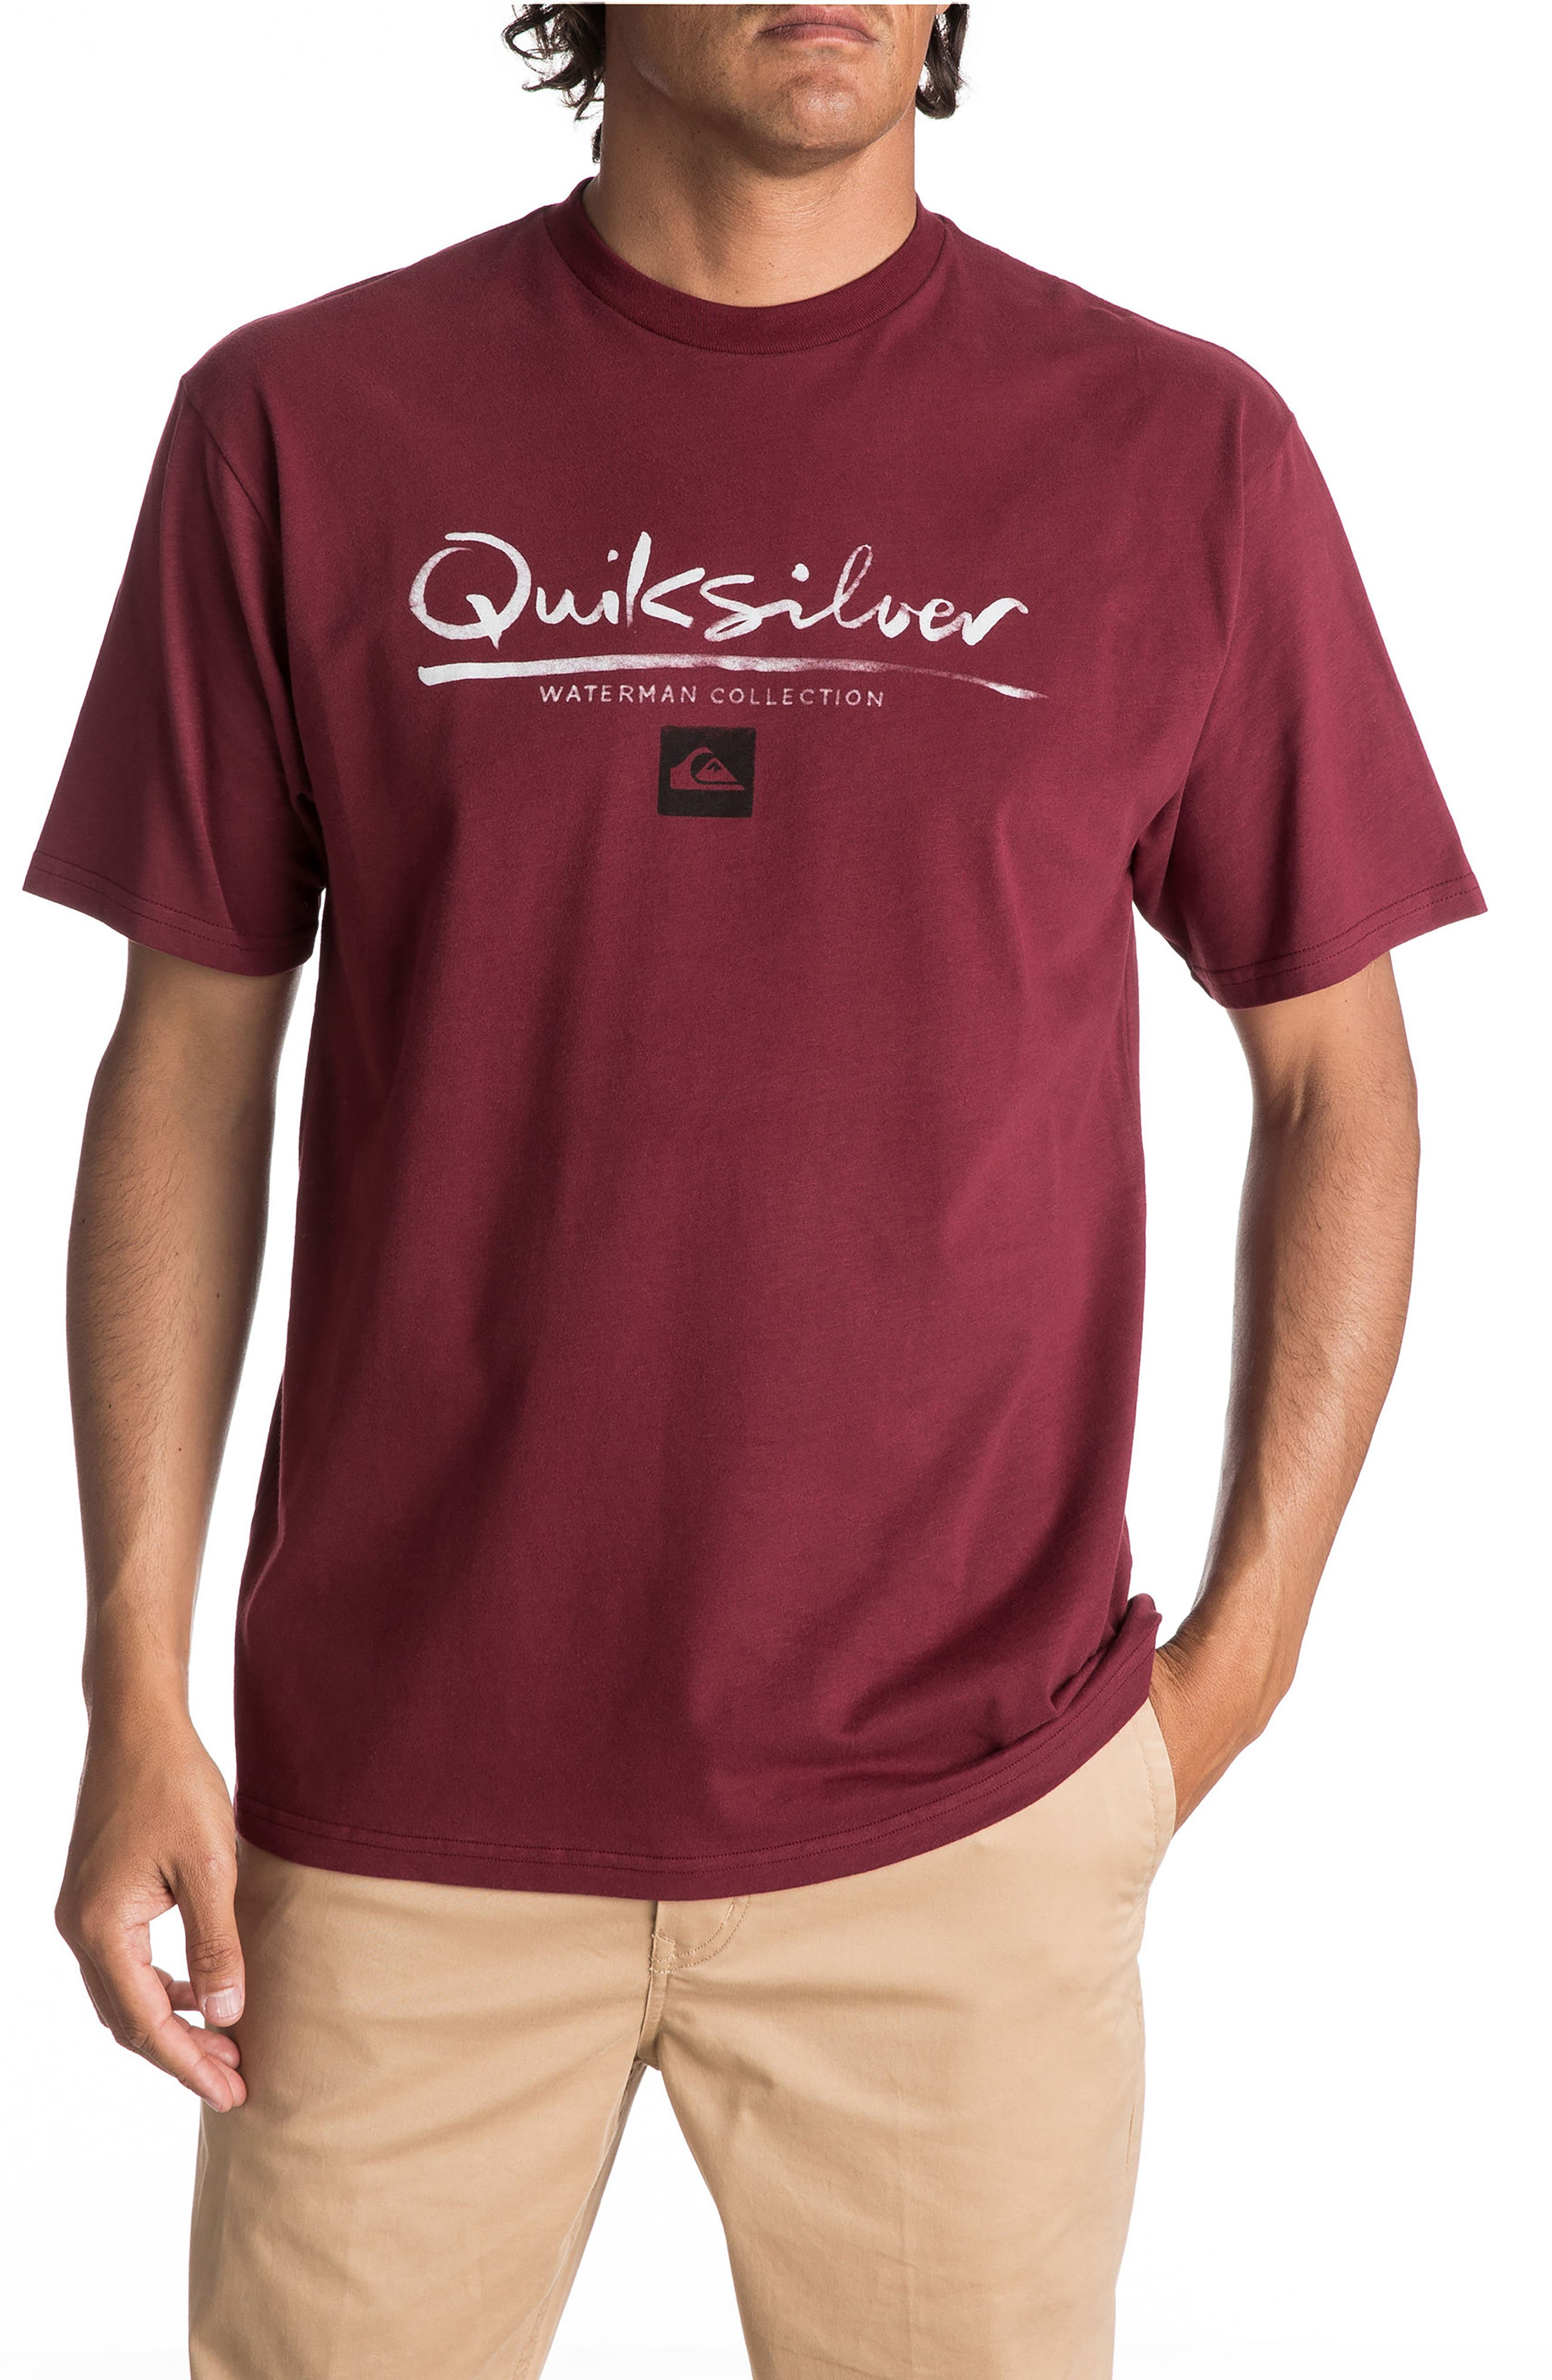 Alternate Image 1 Selected - Quiksilver Waterman Collection Wordmark T-Shirt